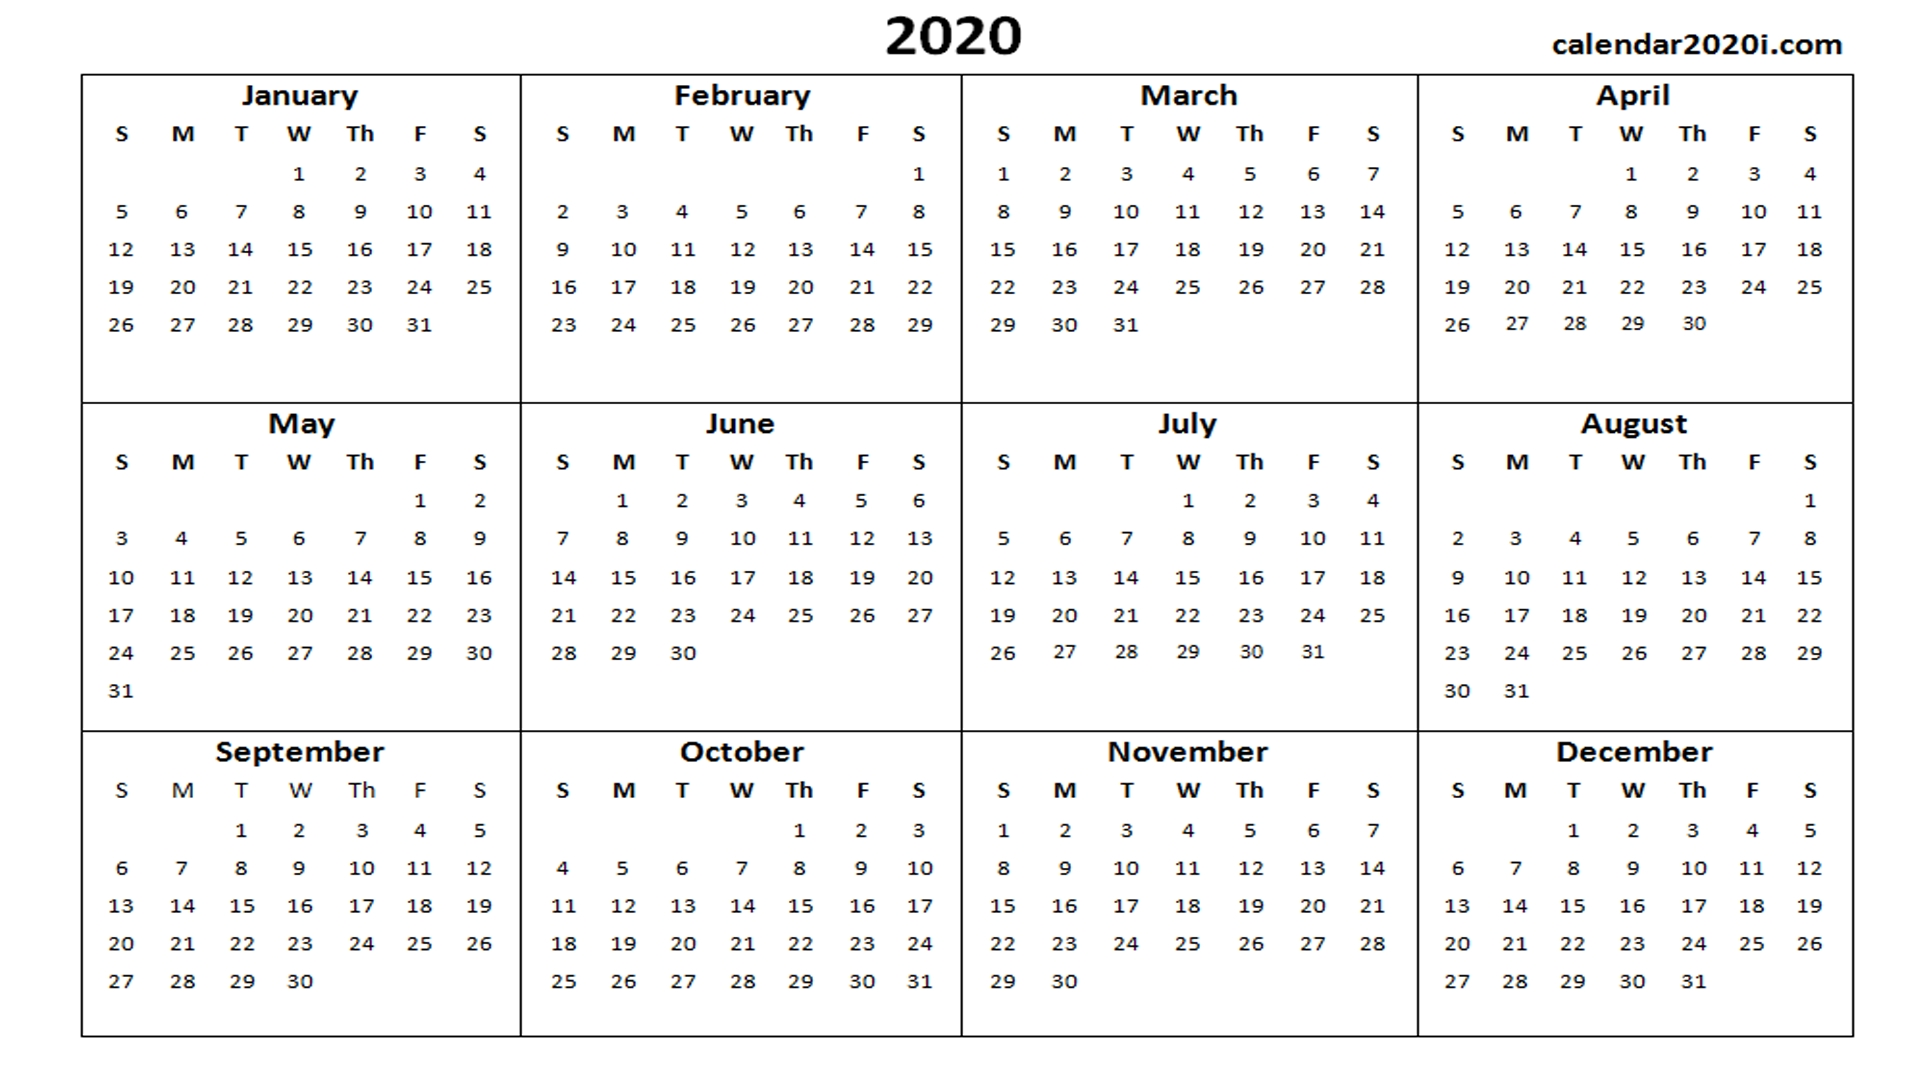 2020 Calendar Printable Template Holidays, Word, Excel, Pdf